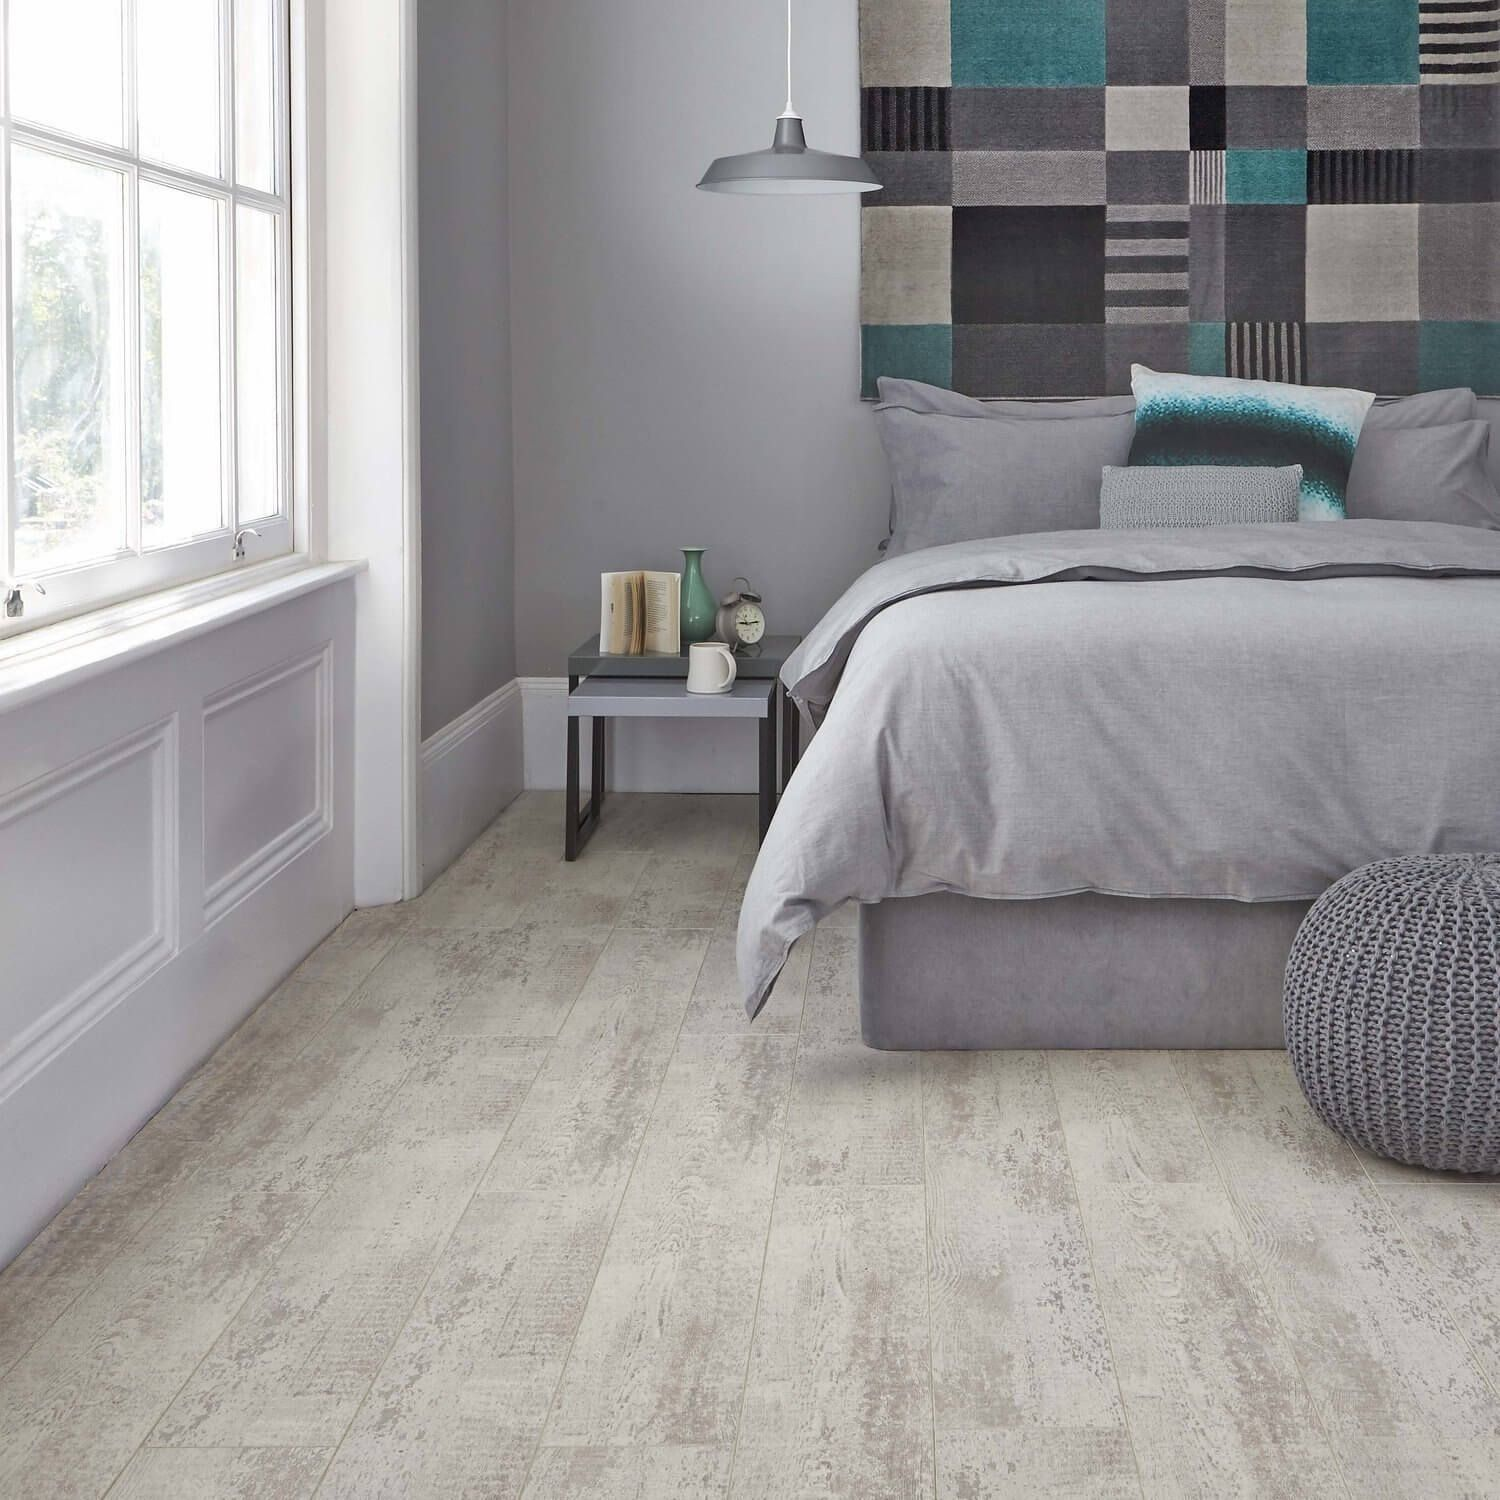 4 Modern Bedroom Vinyl Flooring Ideas – Architectures Ideas